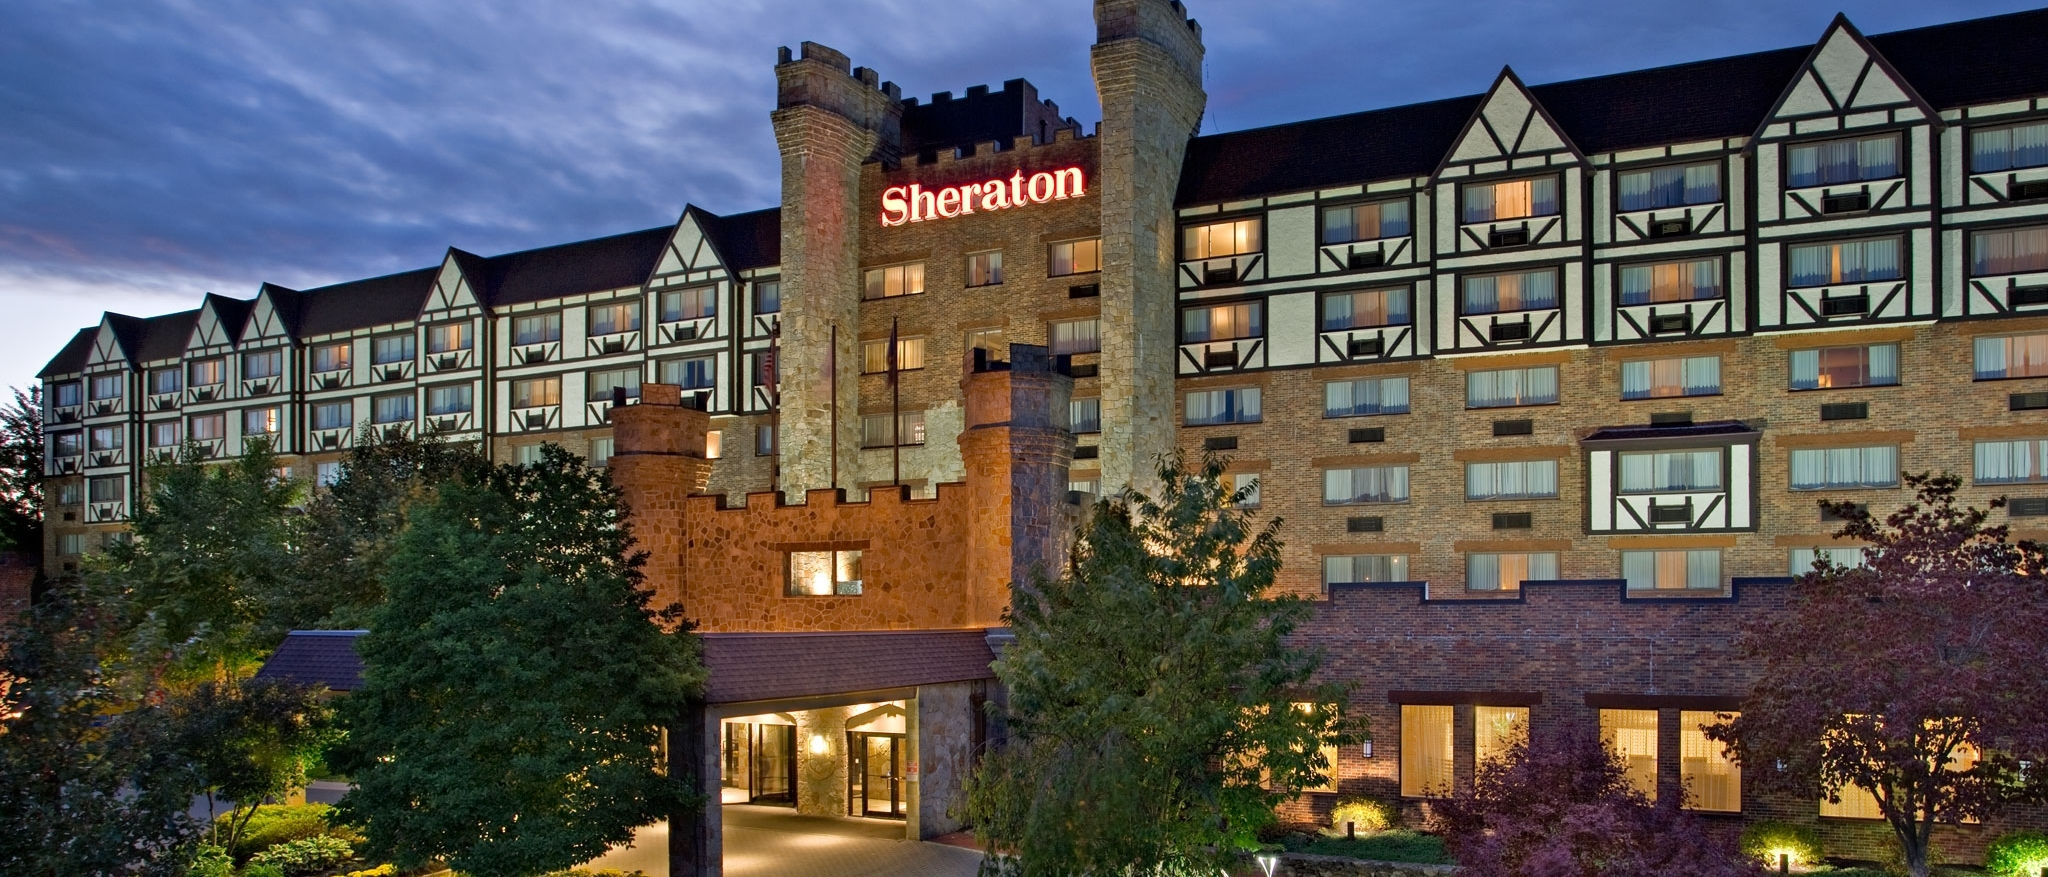 Sheraton Framingham Hotel & Conference Center - Exterior